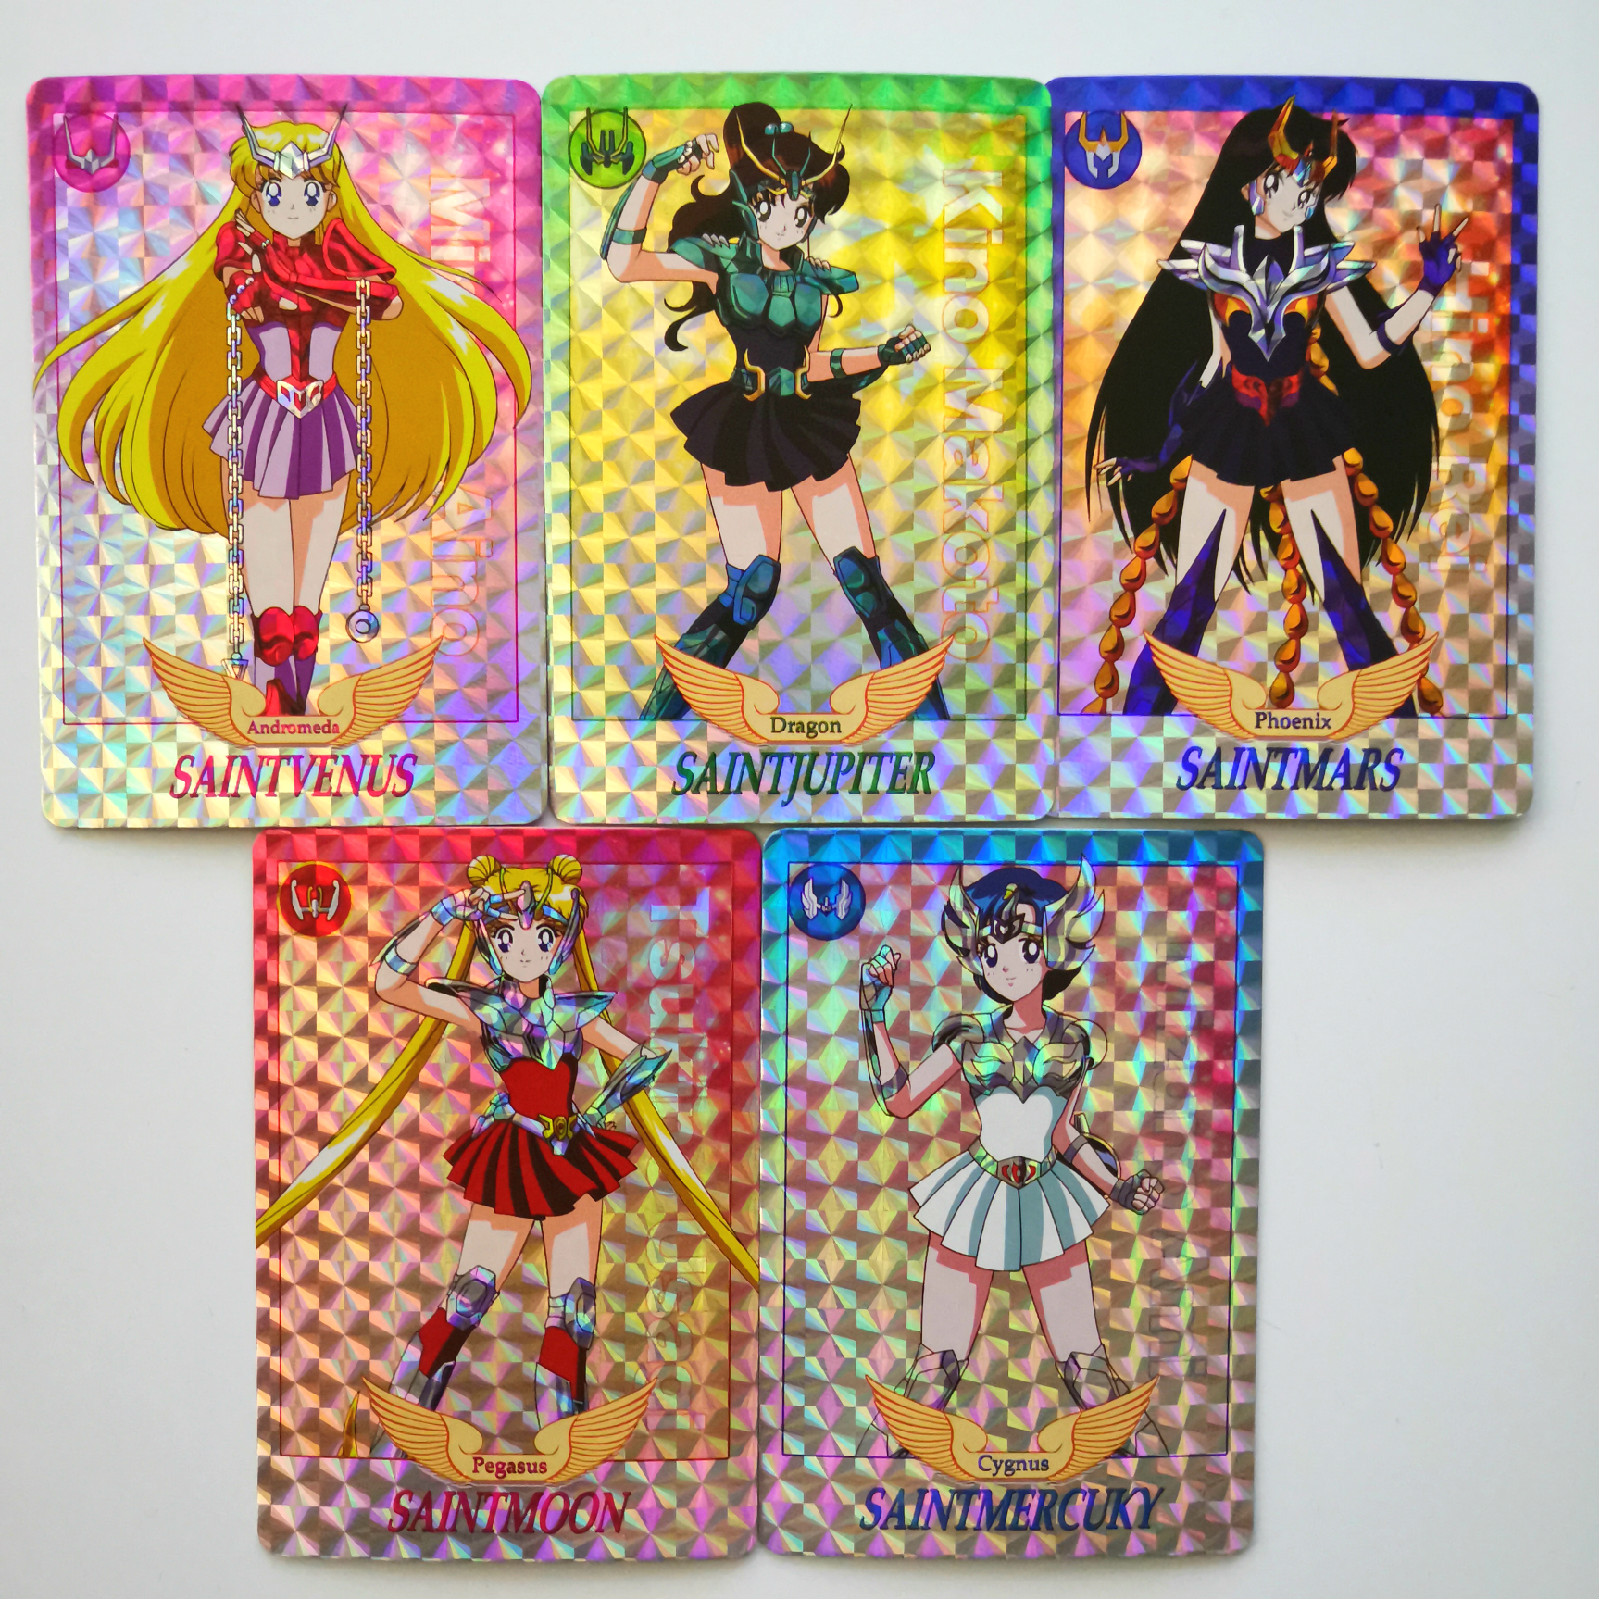 5pcs/set Sailor Moon Cosplay Saint Seiya Toys Hobbies Hobby Collectibles Game Collection Anime Cards